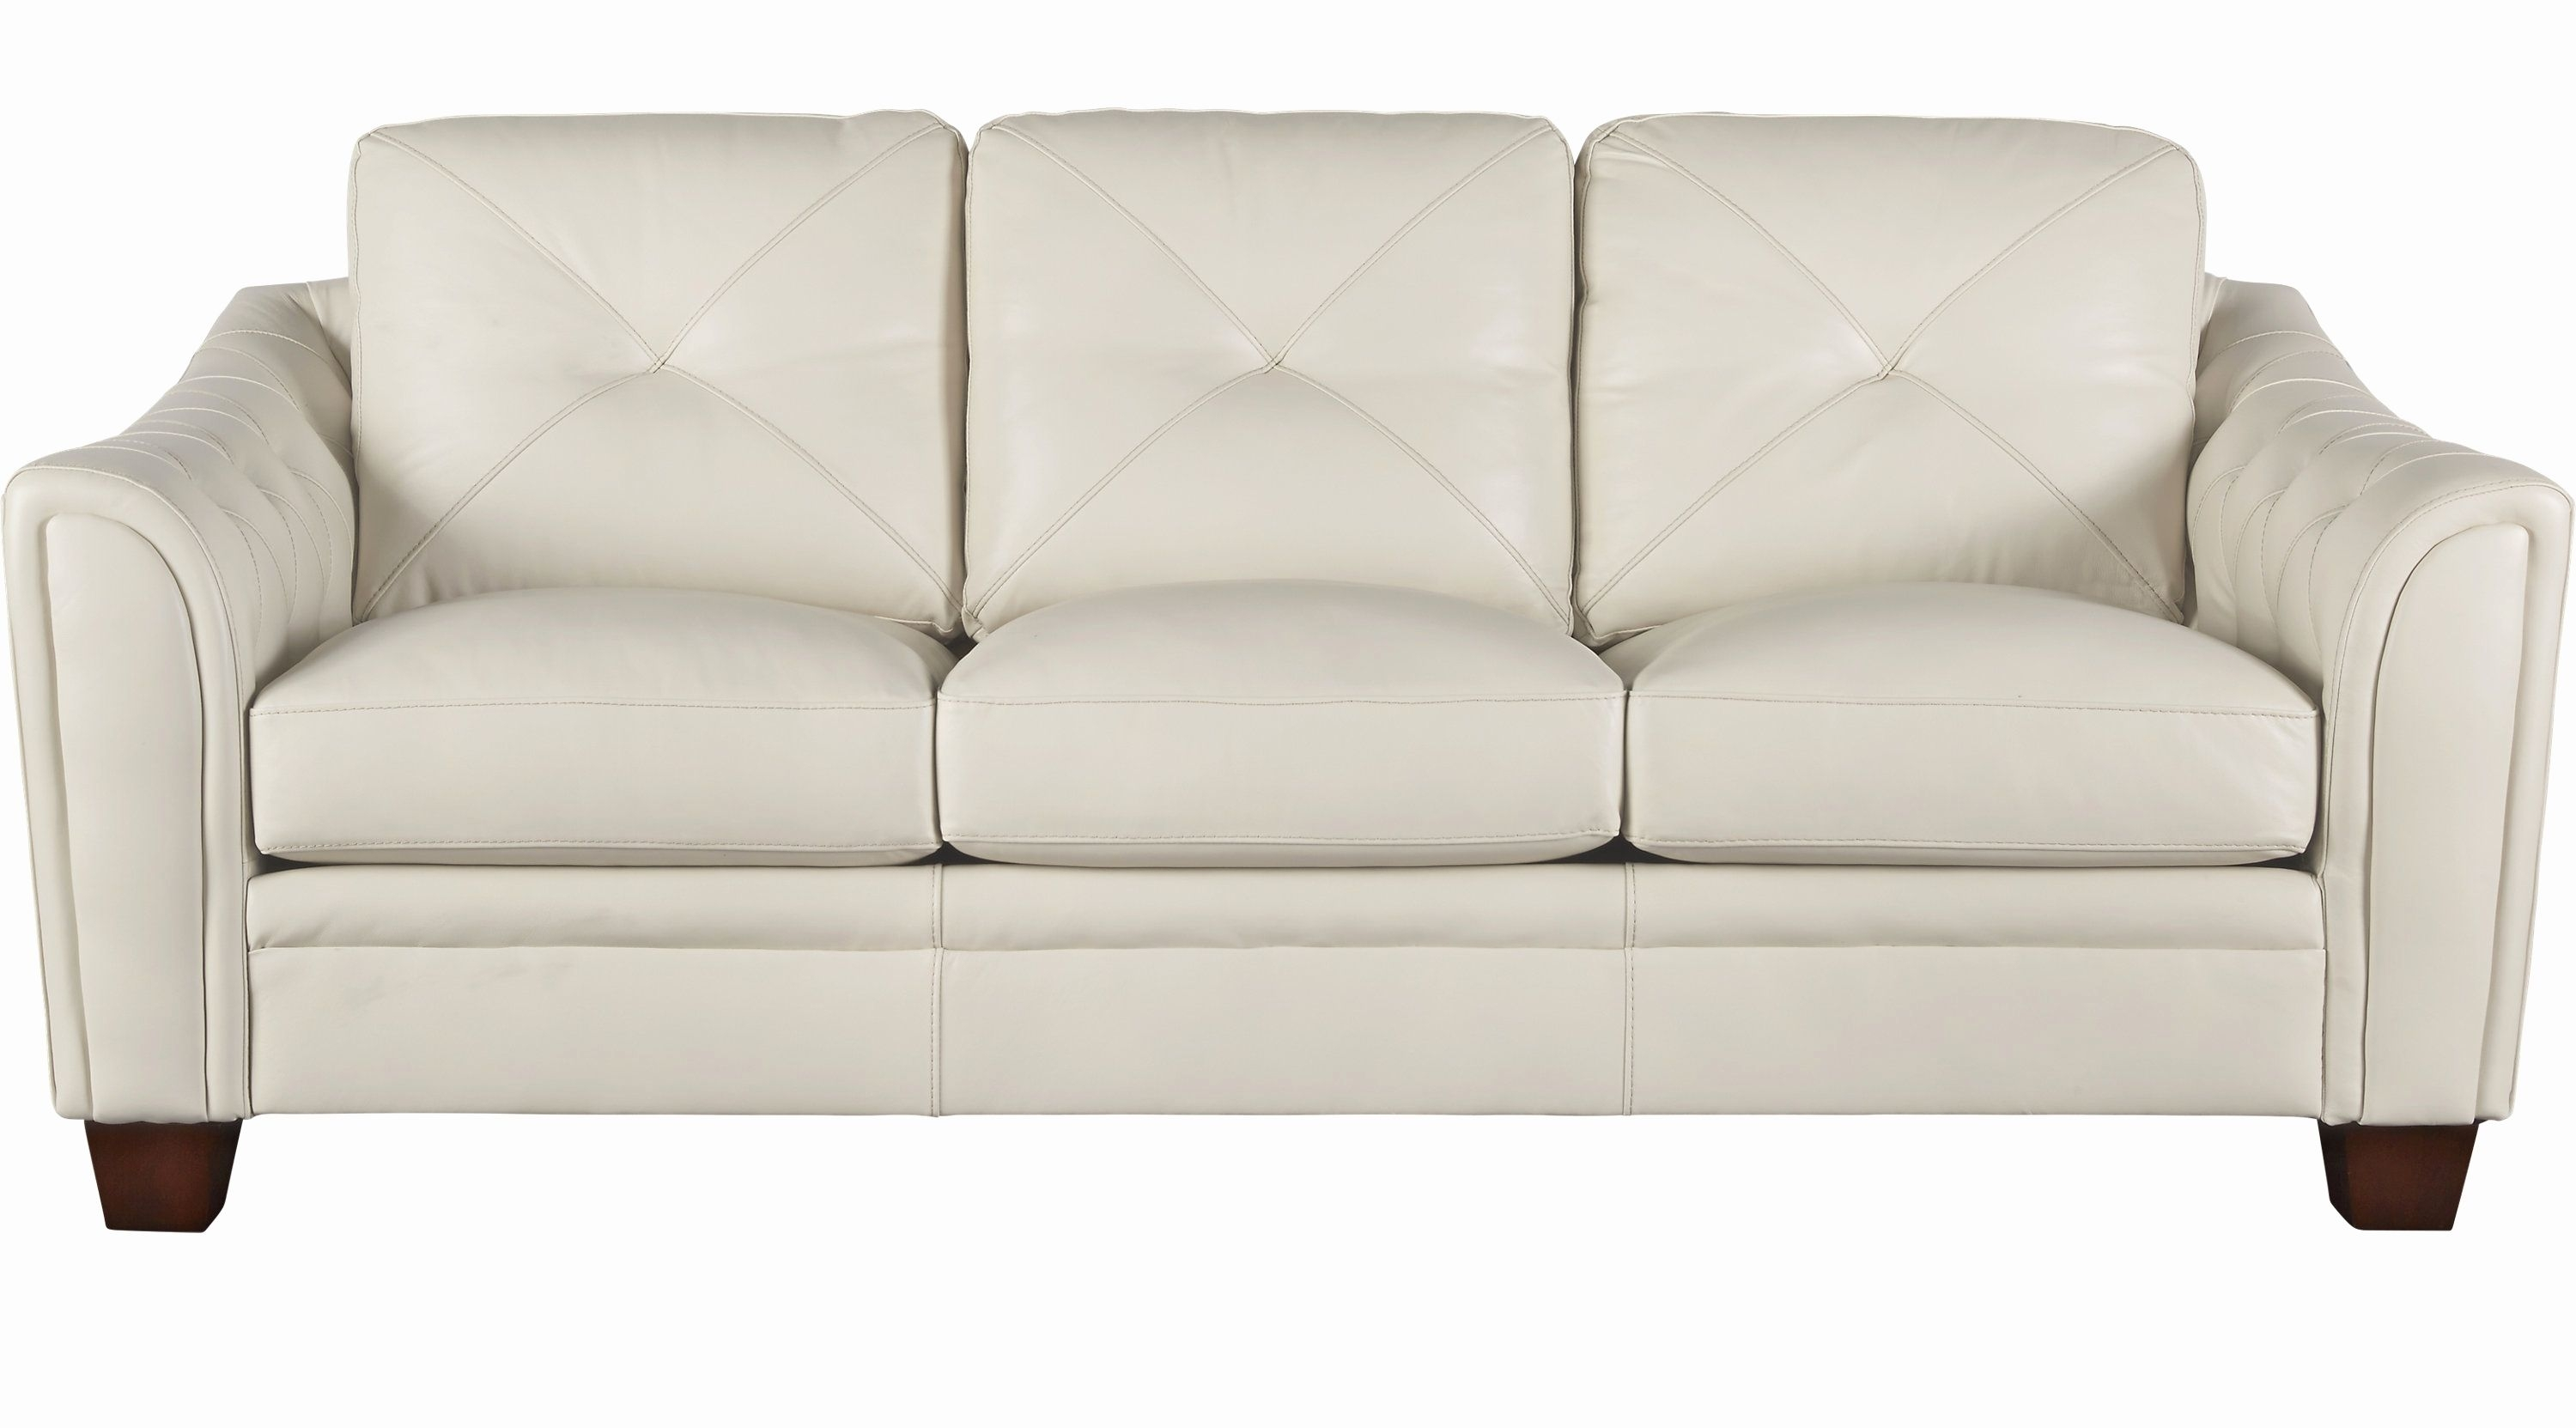 Luxury Ivory Leather Sofa Photographs 888 00 Marcella Ivory Off Pertaining To Off White Leather Sofas (View 8 of 10)